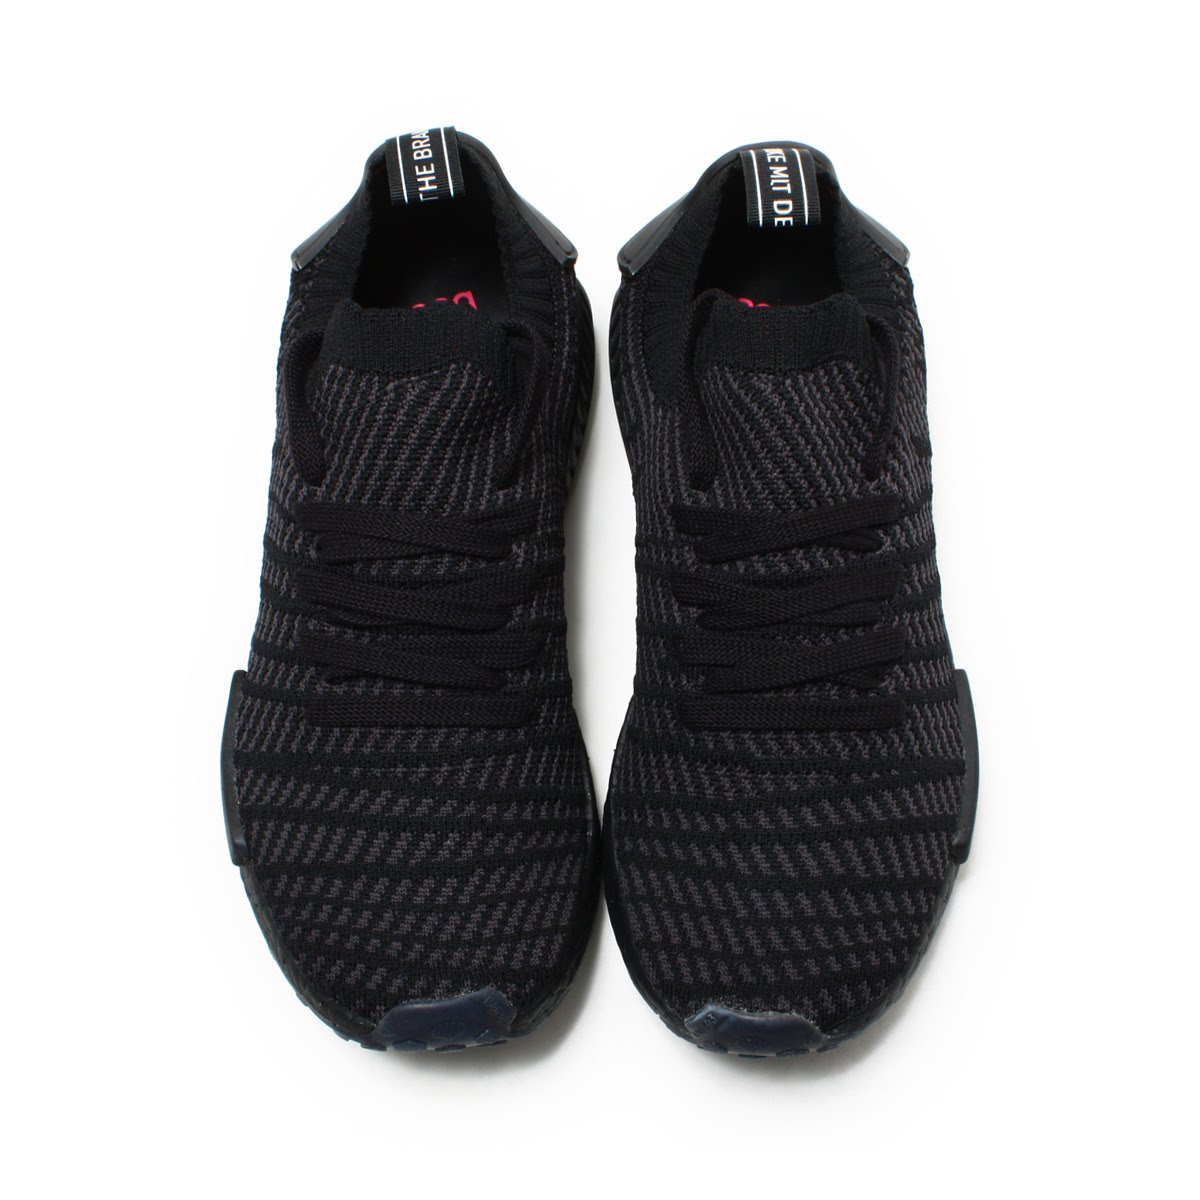 499f65091 ... Primeknit in Triple Black CQ2391-8  Preview Of adidas Originals NMDR1  STLT PK (Adidas originals N M D R1 STLT PK) Core ...